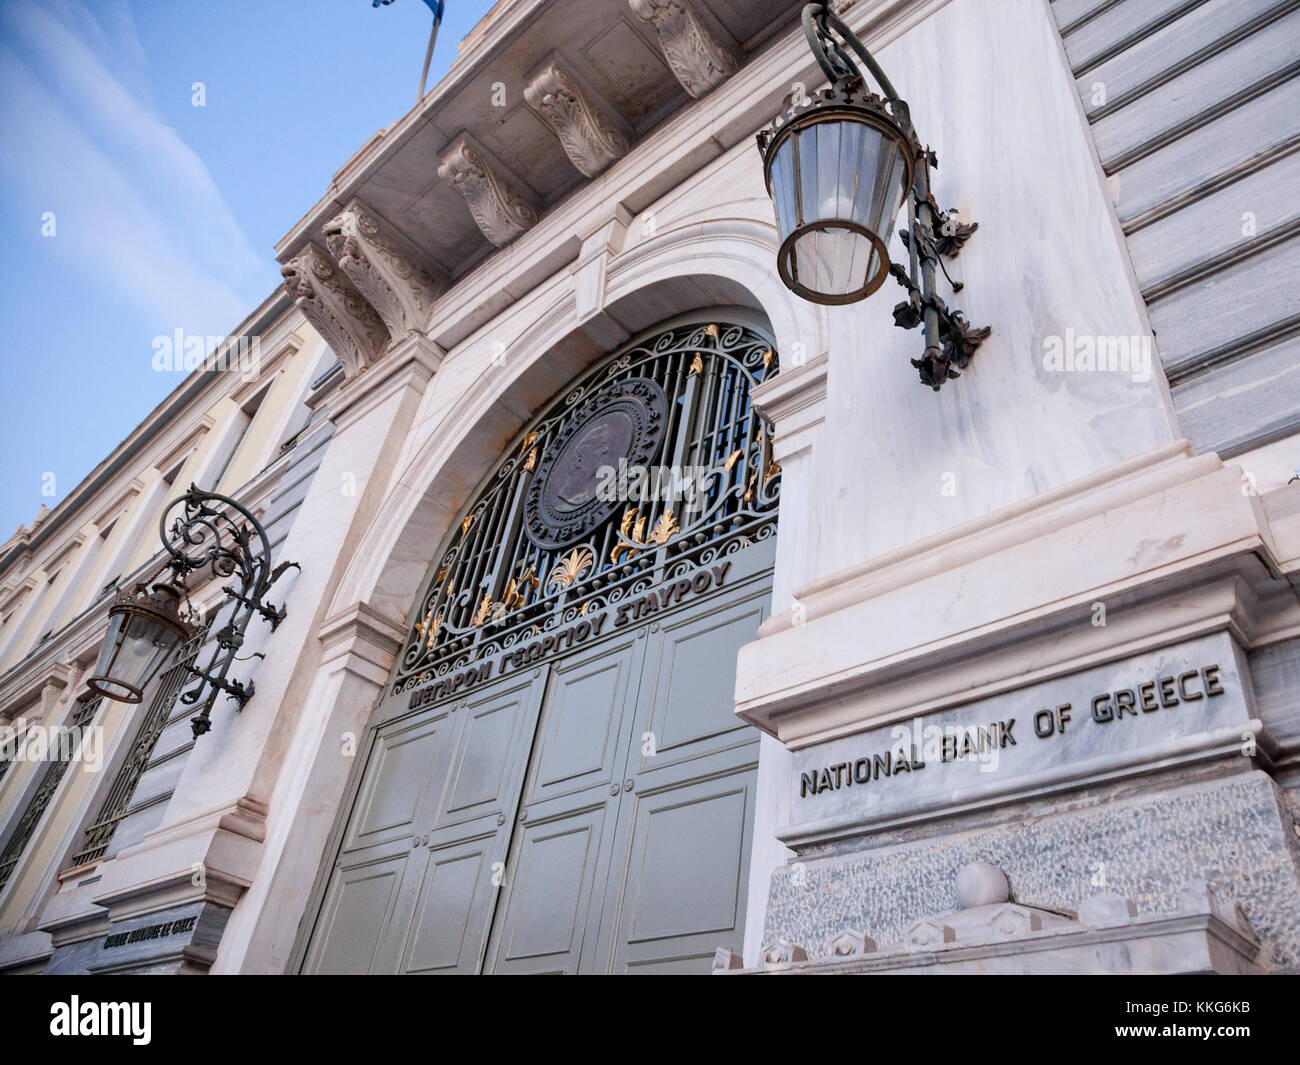 ATHENS, GREECE - NOVEMBER 4, 2017: Main entrance of the National Bank of Greece, the central bank of the country, - Stock Image